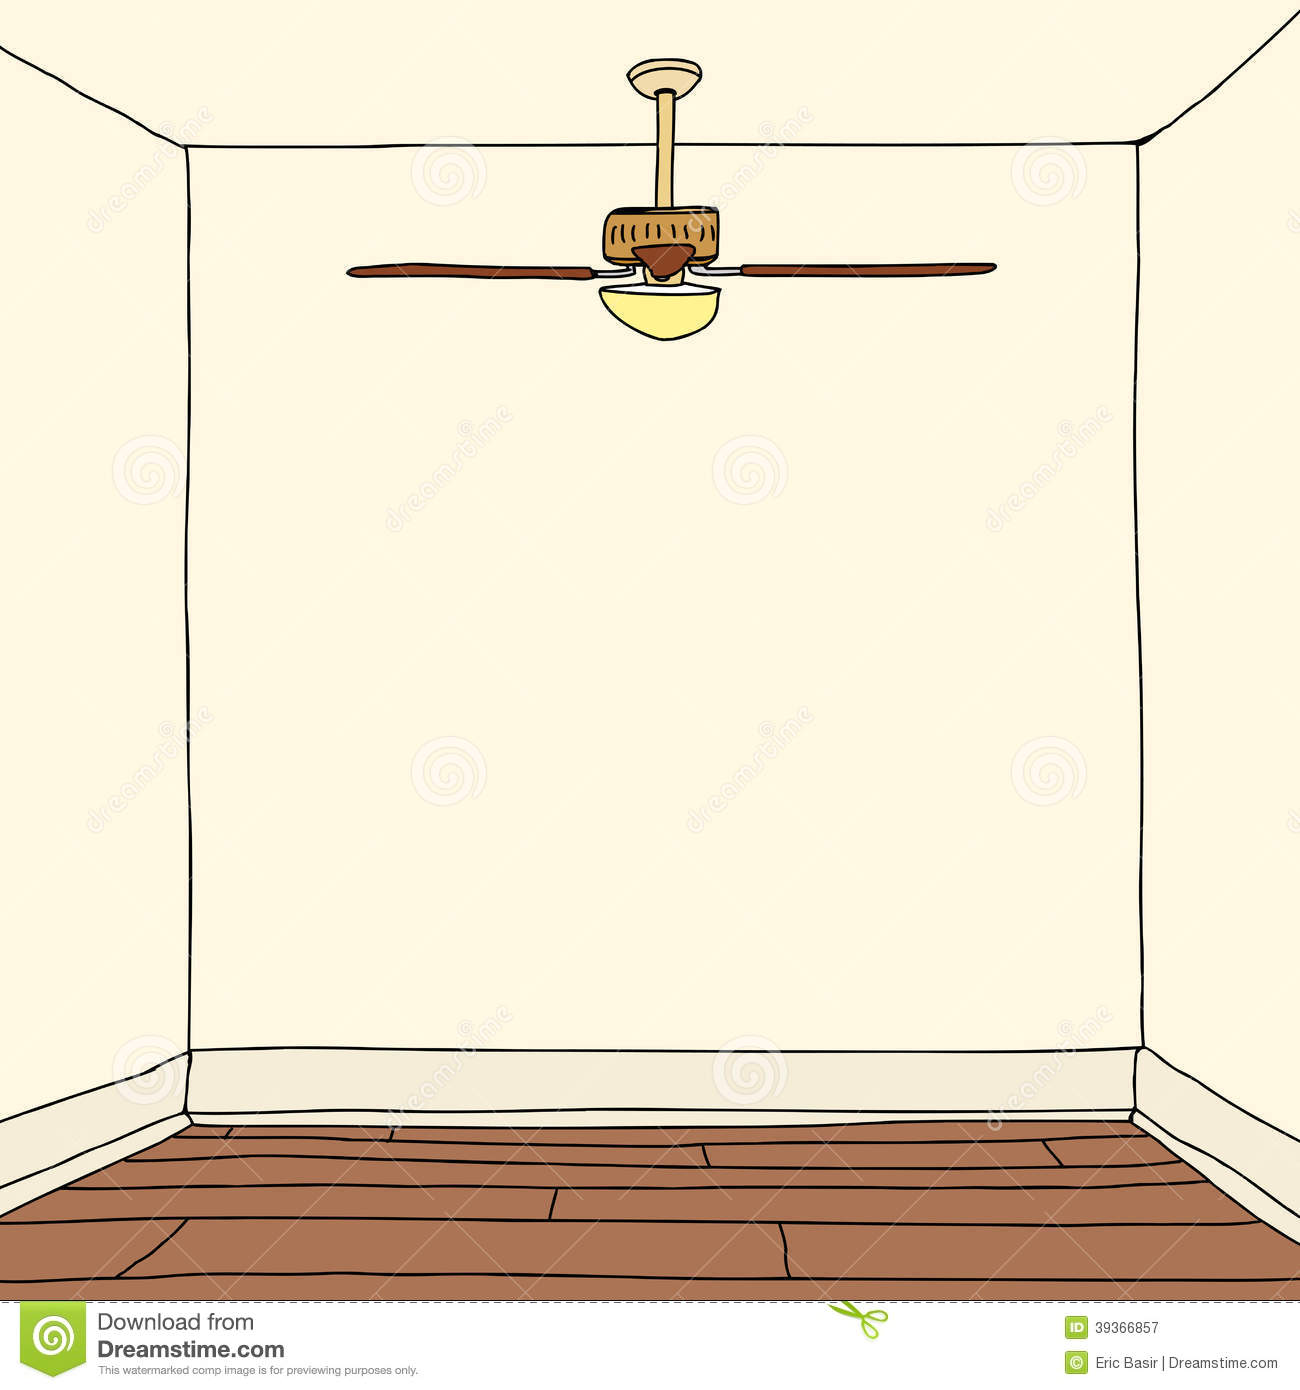 Room With Hardwood Floors Stock Vector - Image: 39366857